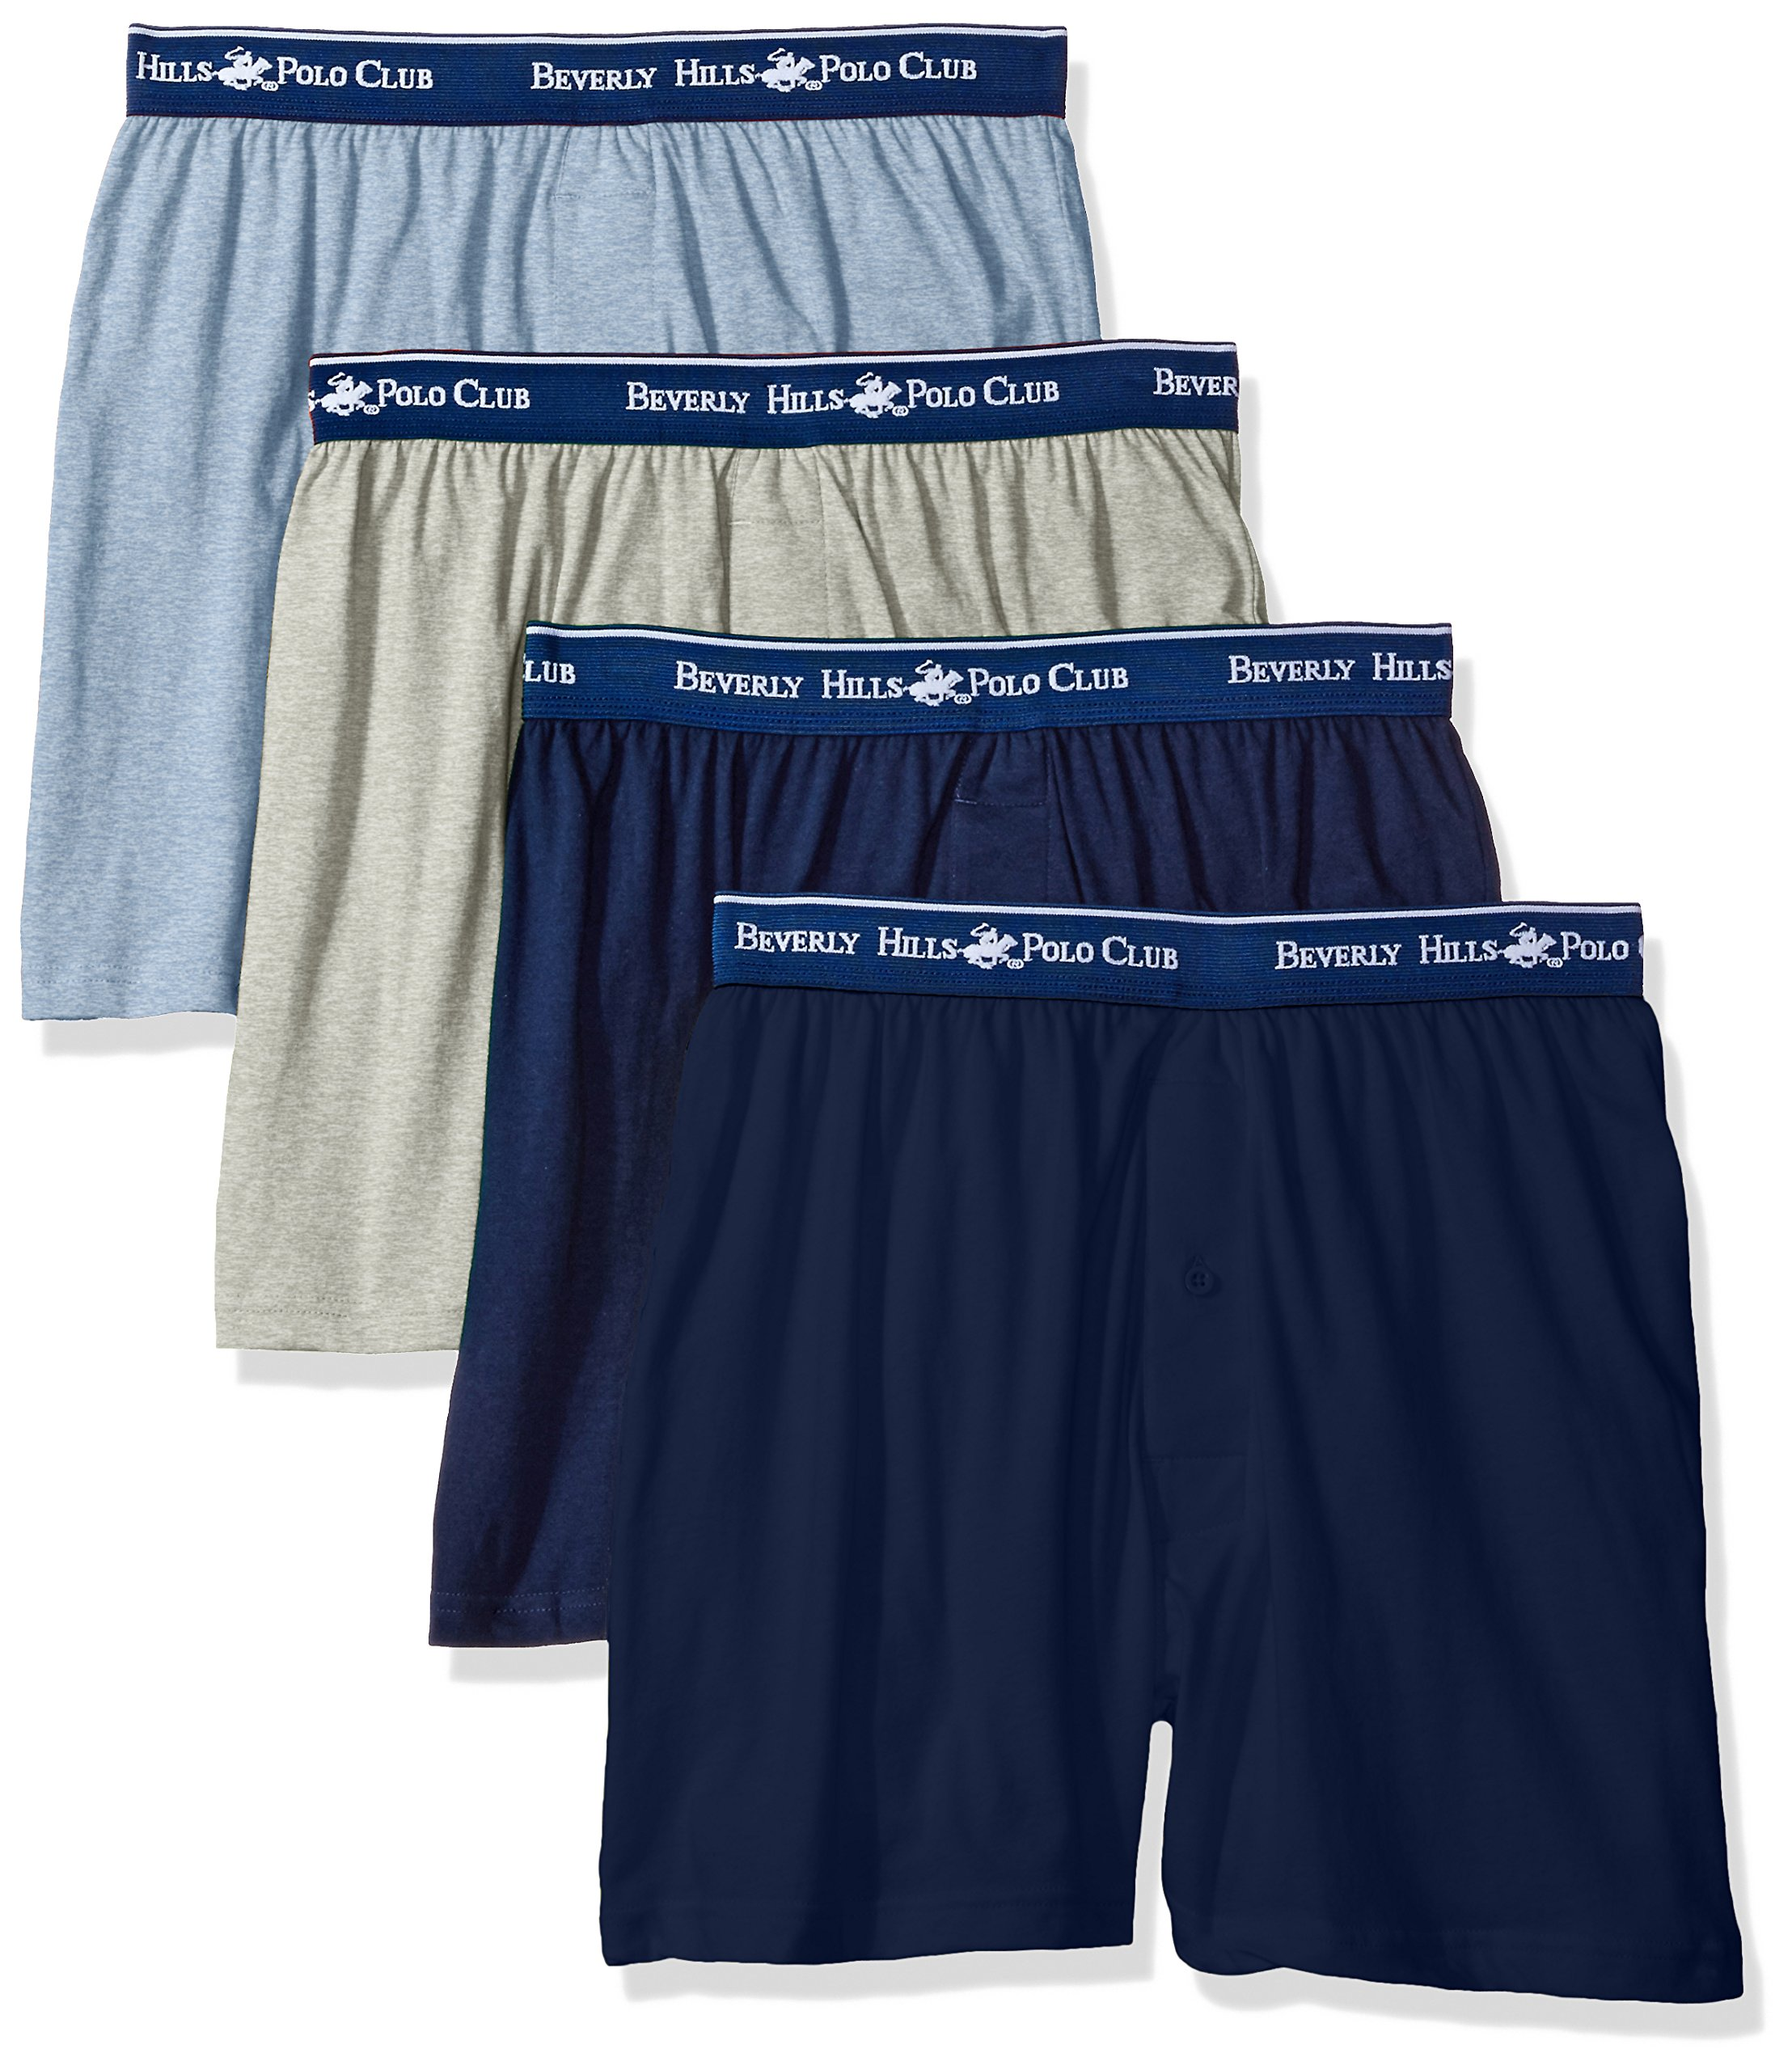 Beverly Hills Polo Club Men's 4 Pack Knit Boxer, Navy/Grey Light Blue Heather, Medium by Beverly Hills Polo Club